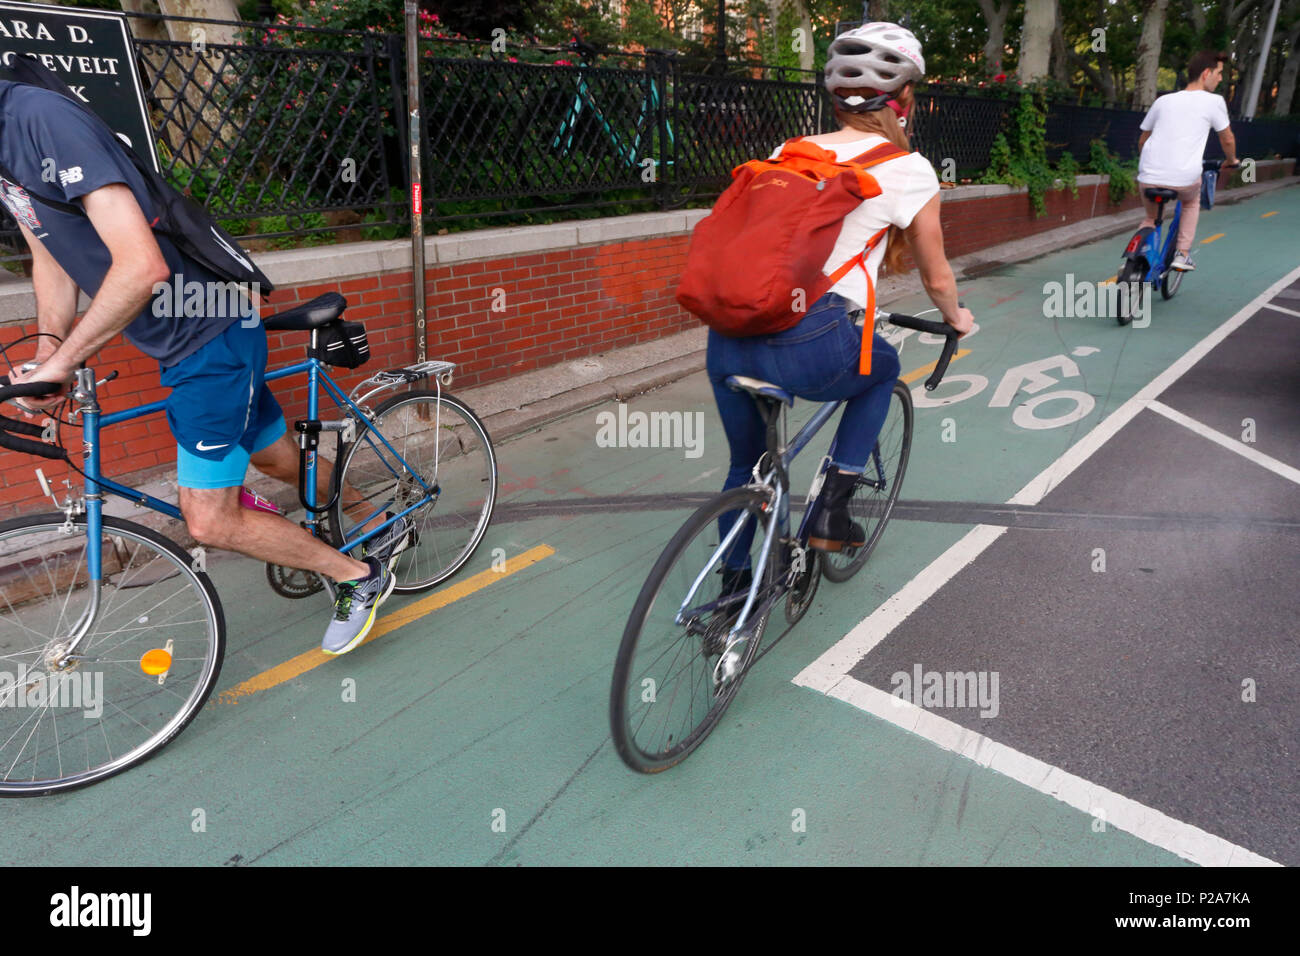 Bicyclists on a bicycle lane on Chrystie, and E. Houston St. - Stock Image